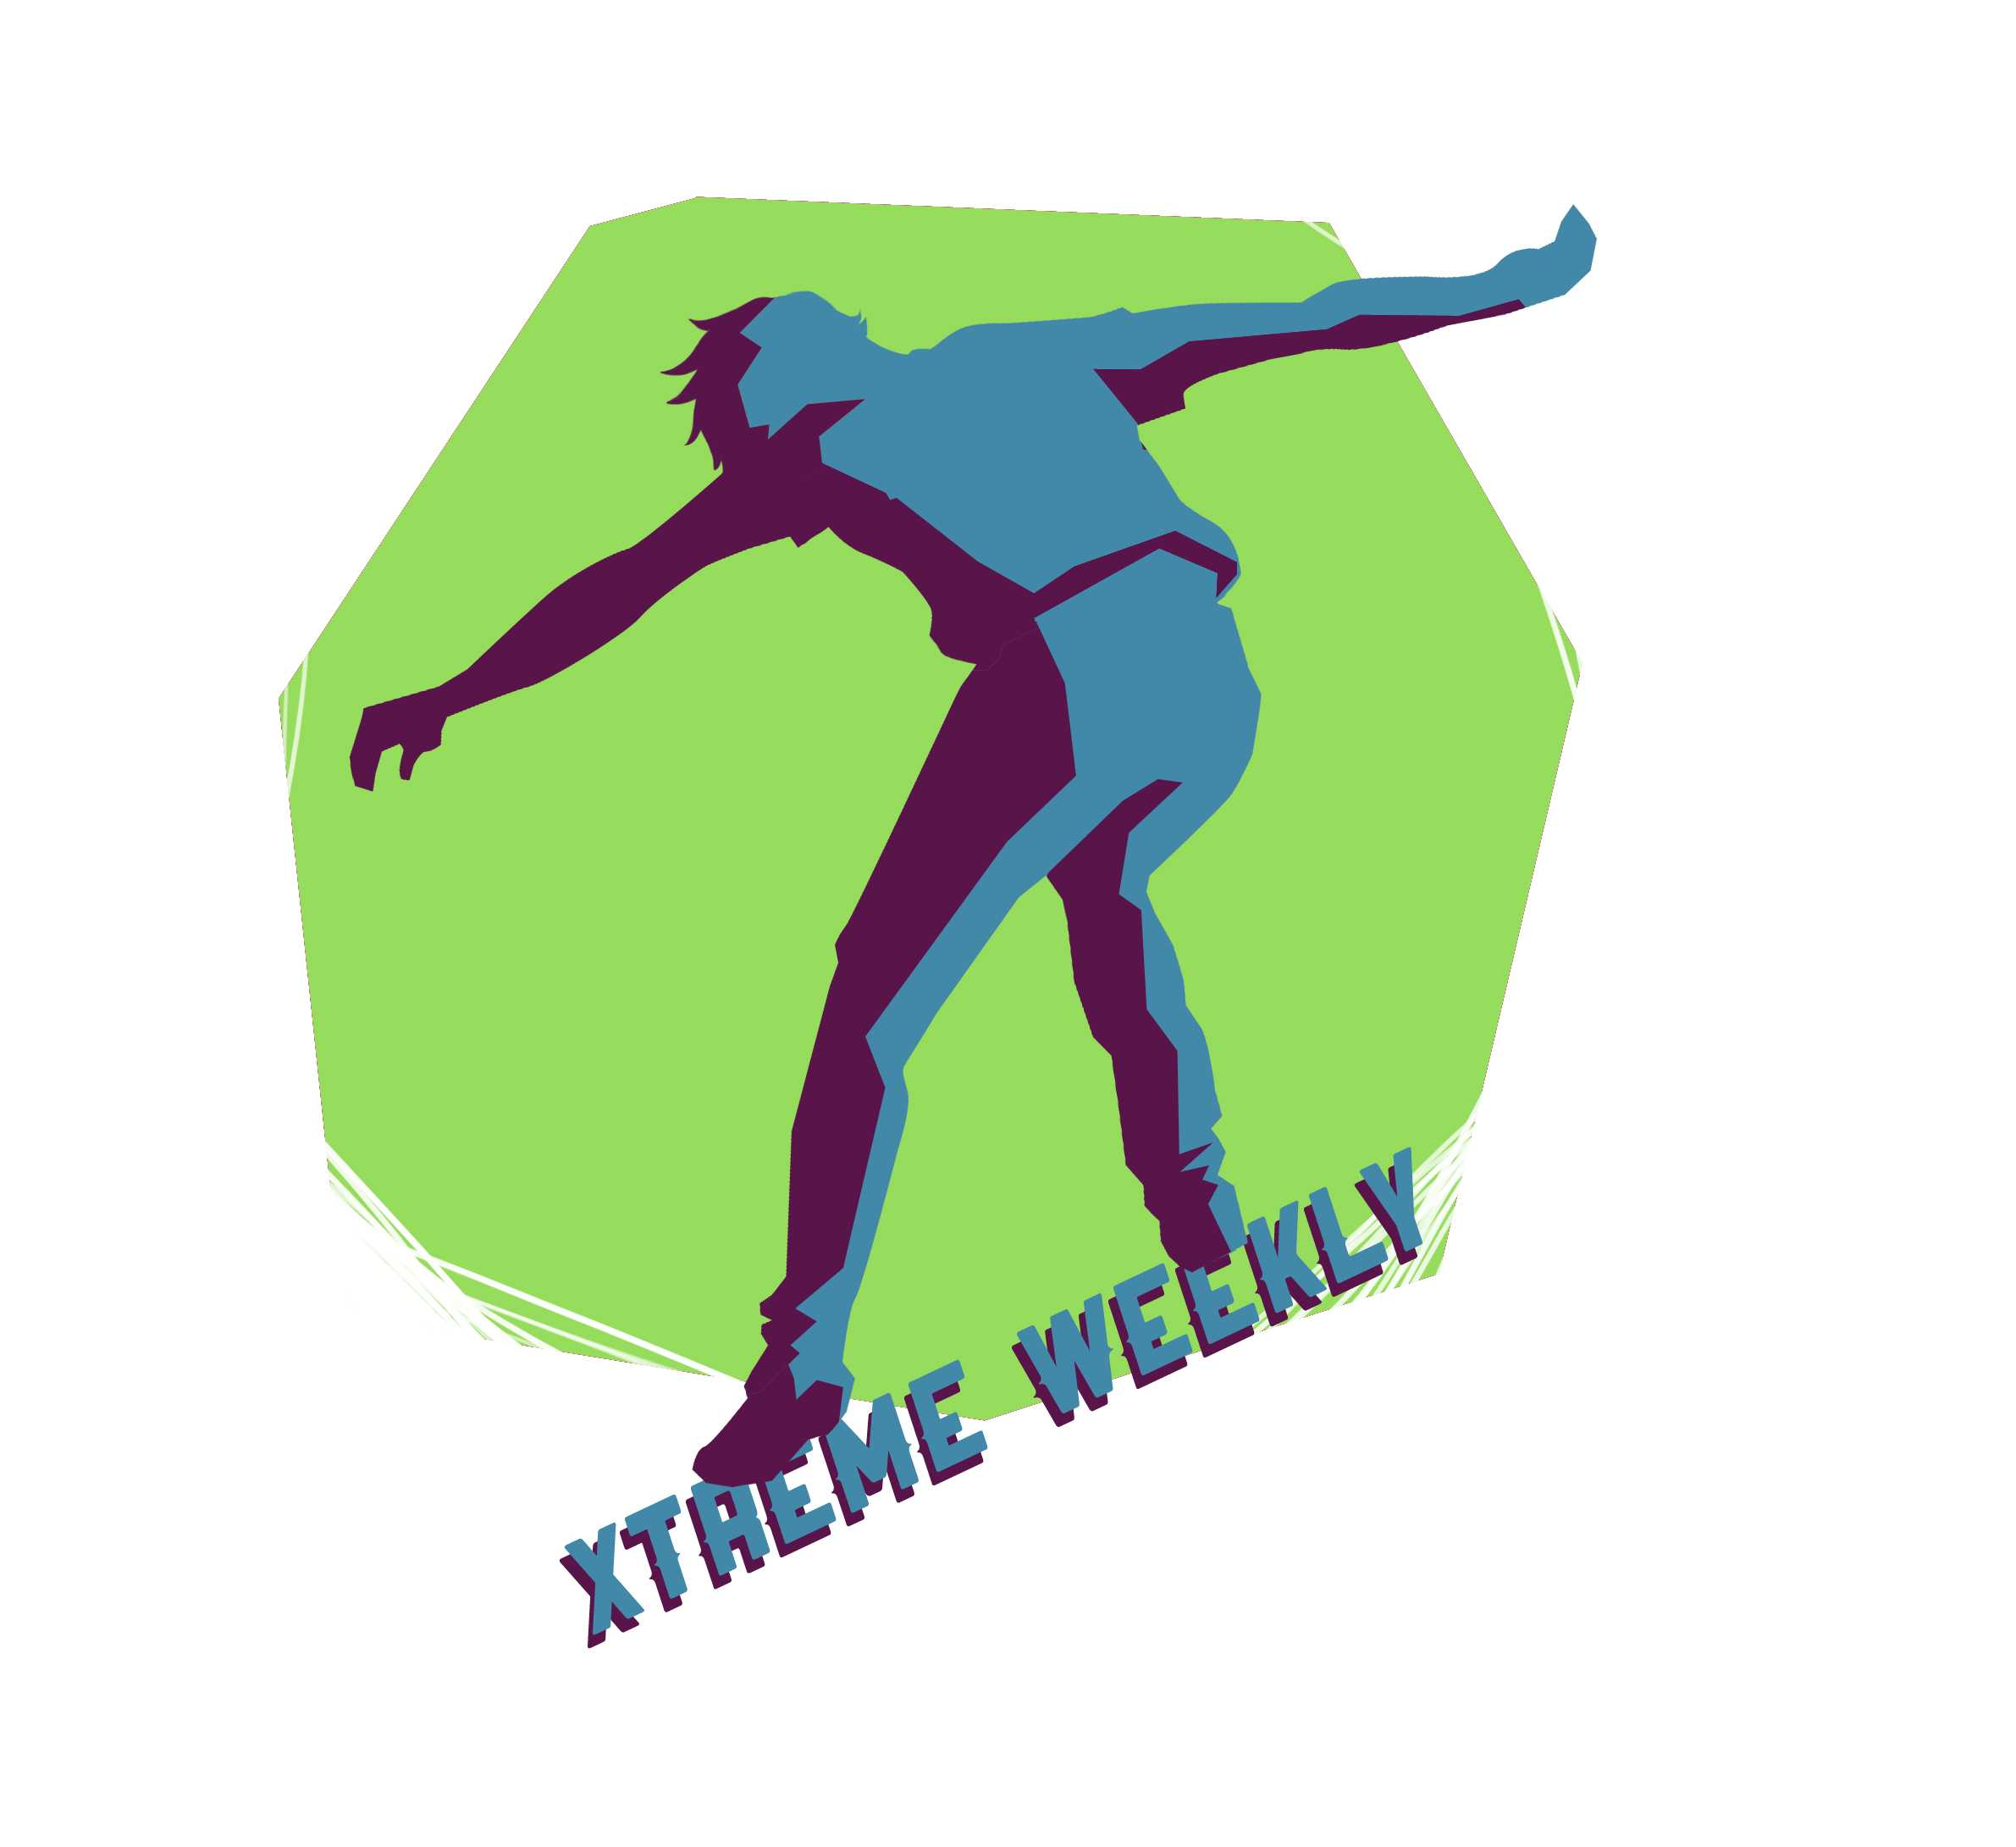 Xtreme Weekly Issue 10: Home of the Harsh Waves